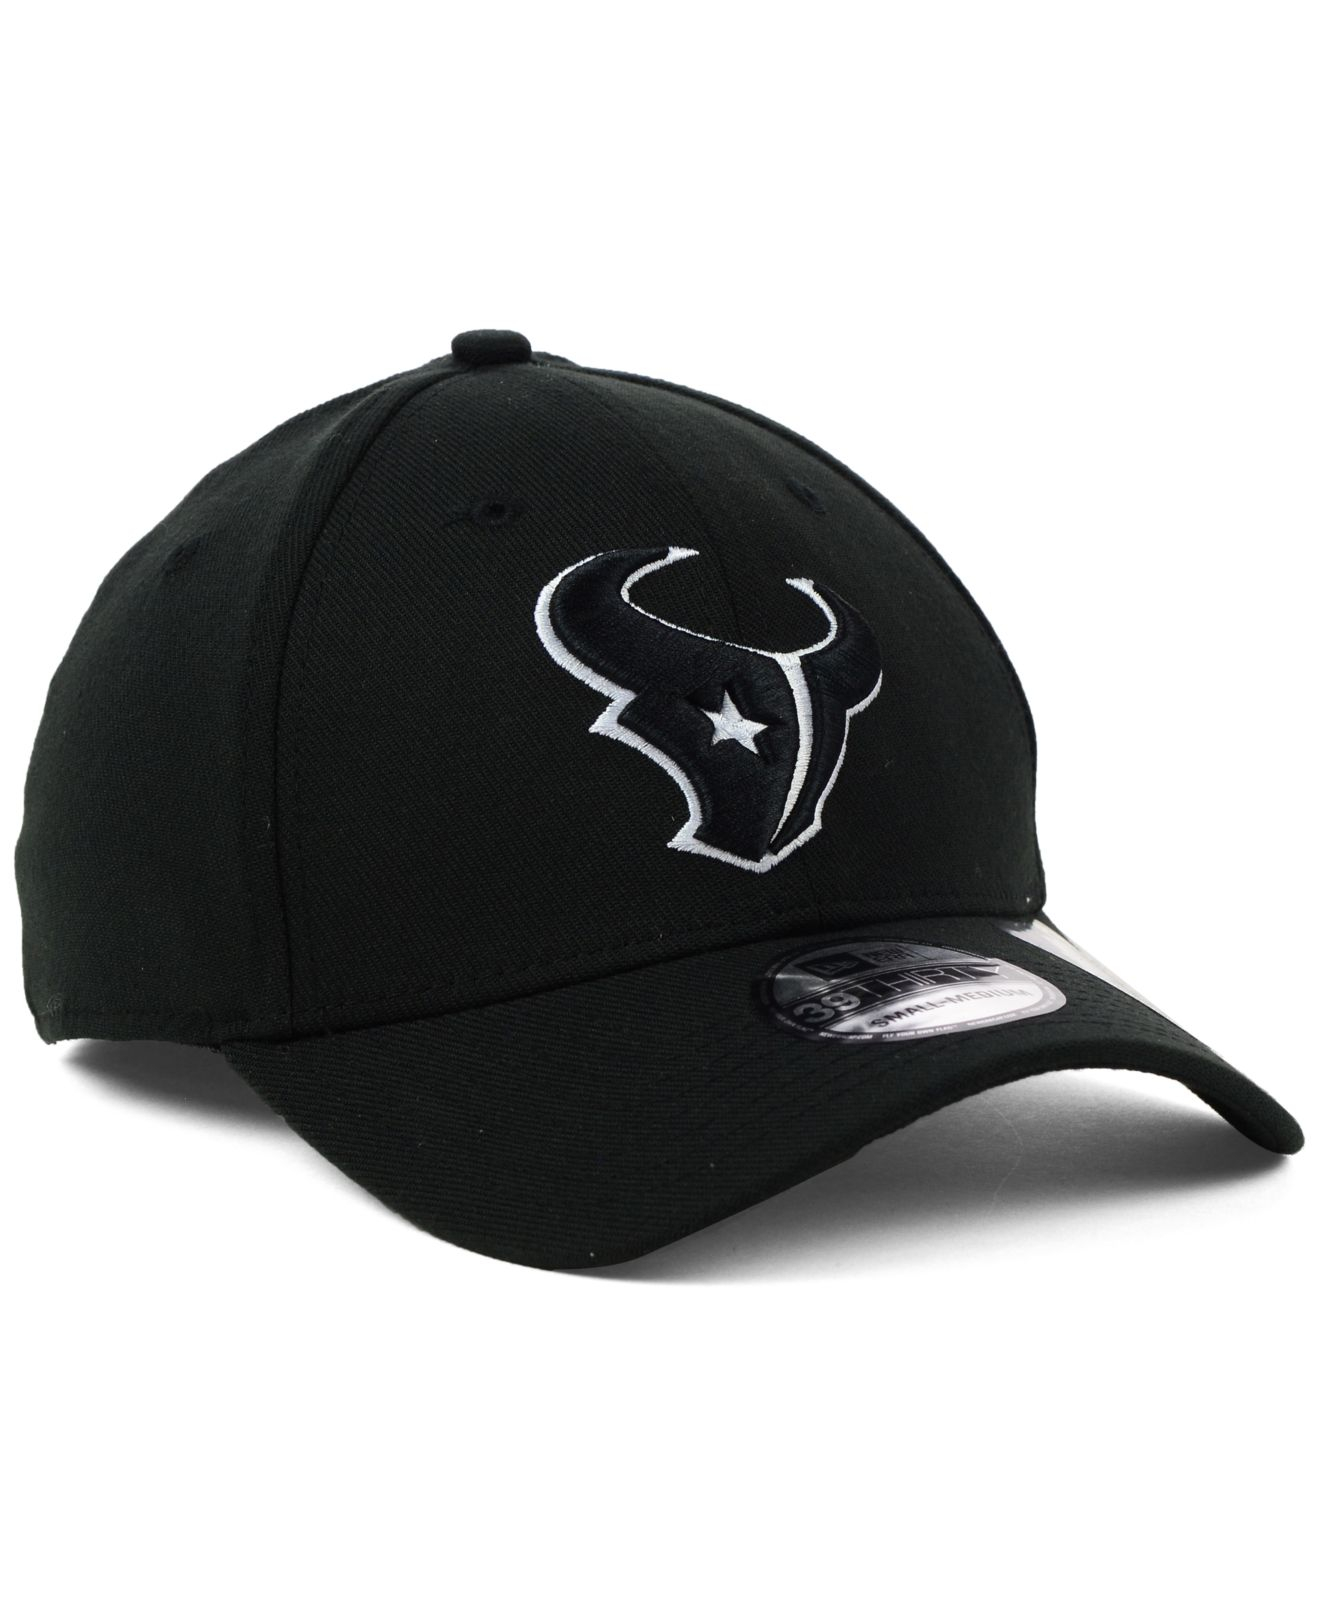 c8a958989 ... sweden lyst ktz houston texans classic 39thirty cap in black for men  fa1ab c1a88